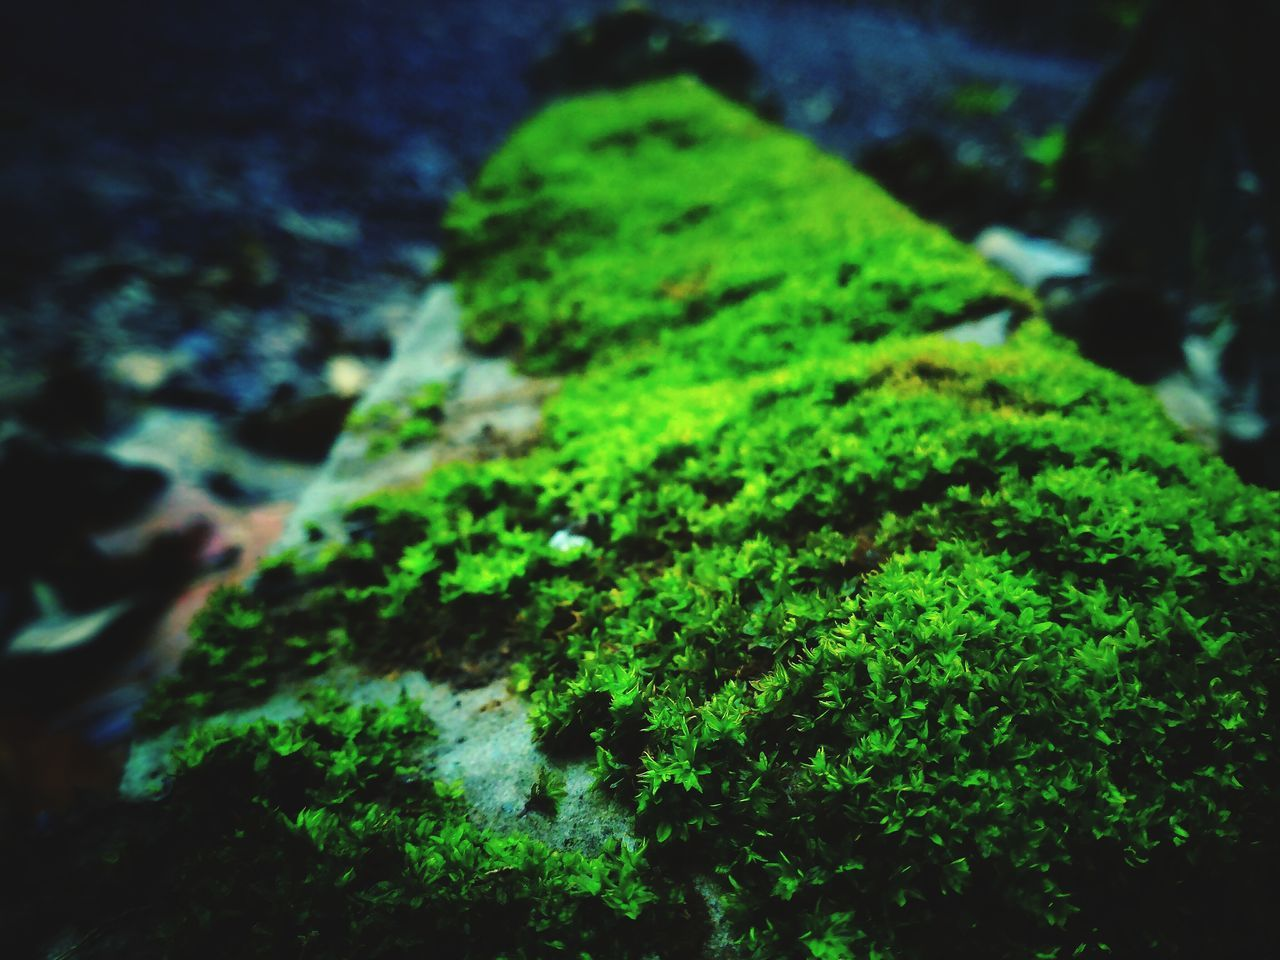 green color, moss, rock - object, nature, no people, close-up, day, outdoors, textured, beauty in nature, freshness